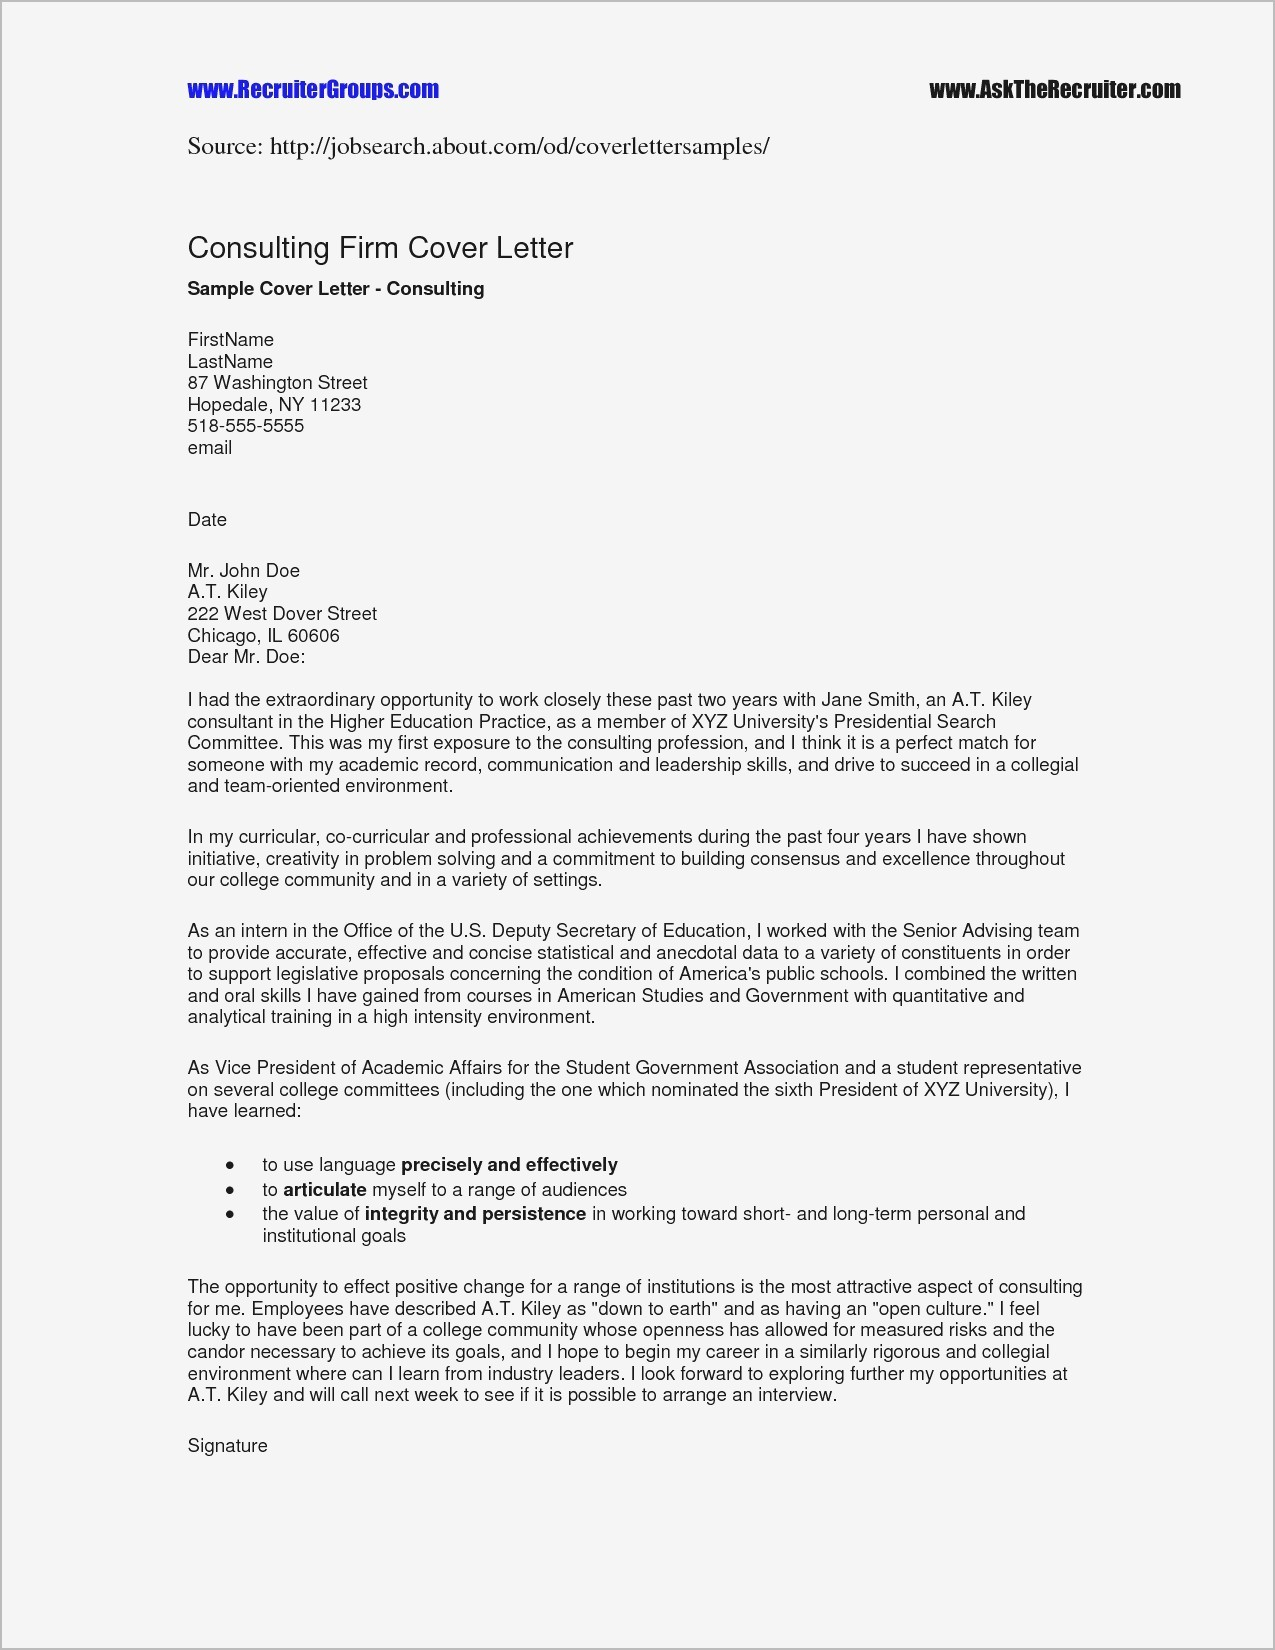 Business Letter Template Via Email - Business Email Template Sample Fresh Microsoft Word Business Letter